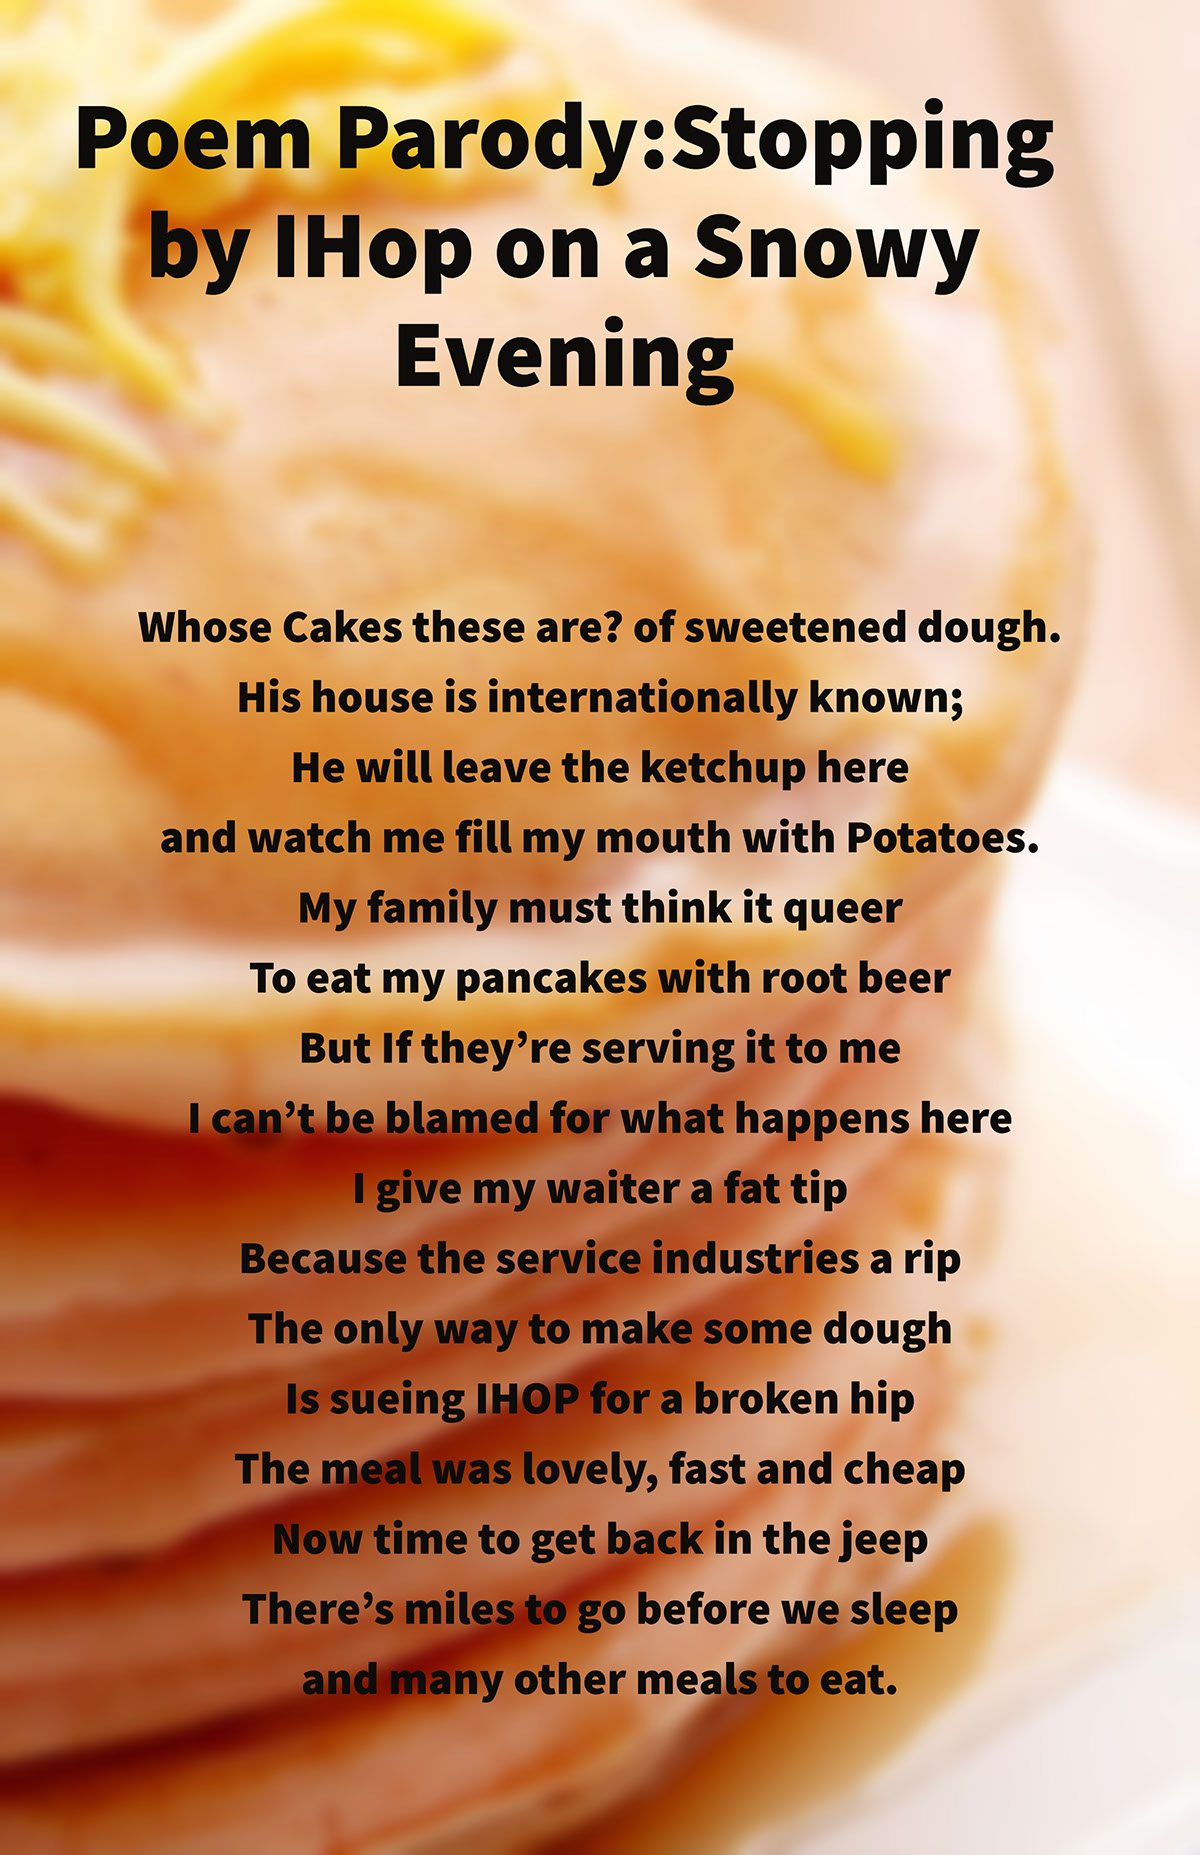 Poem Parody:Stopping by IHop on a Snowy Evening Poem Parody:Stopping by IHop on a Snowy Evening Whose Cakes these are? of sweetened dough. His house is internationally known; He will leave the ketchup here and watch me fill my mouth with Potatoes. My family must think it queer To eat my pancakes with root beer But If they're serving it to me I can't be blamed for what happens here I give my waiter a fat tip Because the service industries a rip The only way to make some dough Is sueing IHOP for a broken hip The meal was lovely, fast and cheap  Now time to get back in the jeep There's miles to go before we sleep and many other meals to eat.